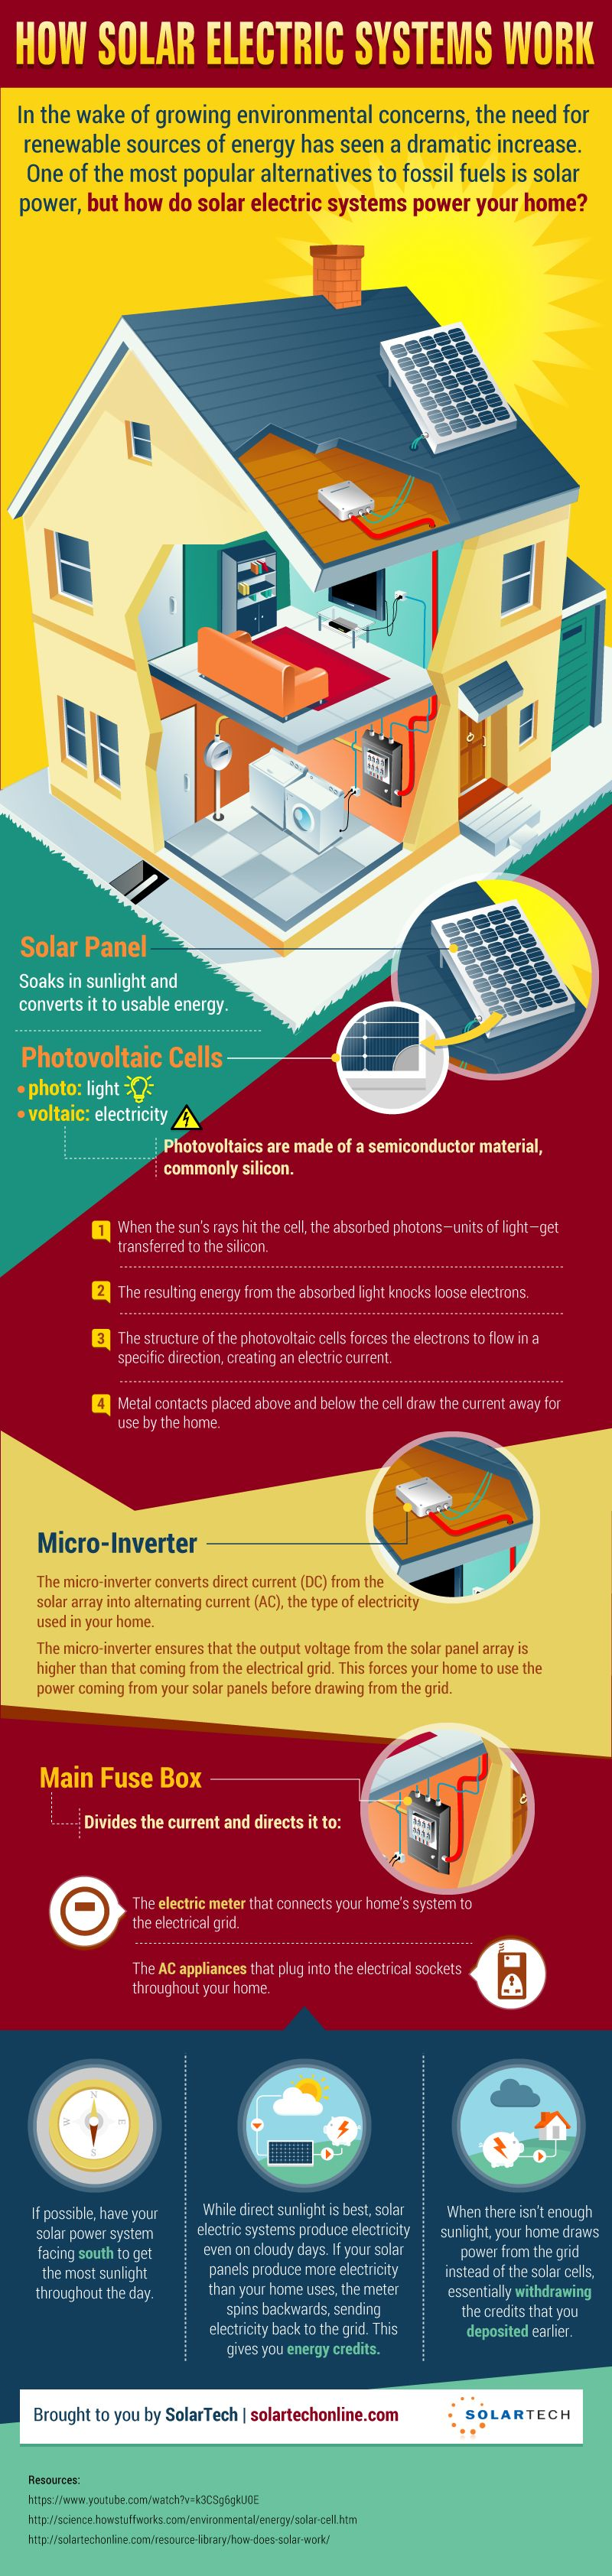 How Solar Electric Systems Work - Infographic